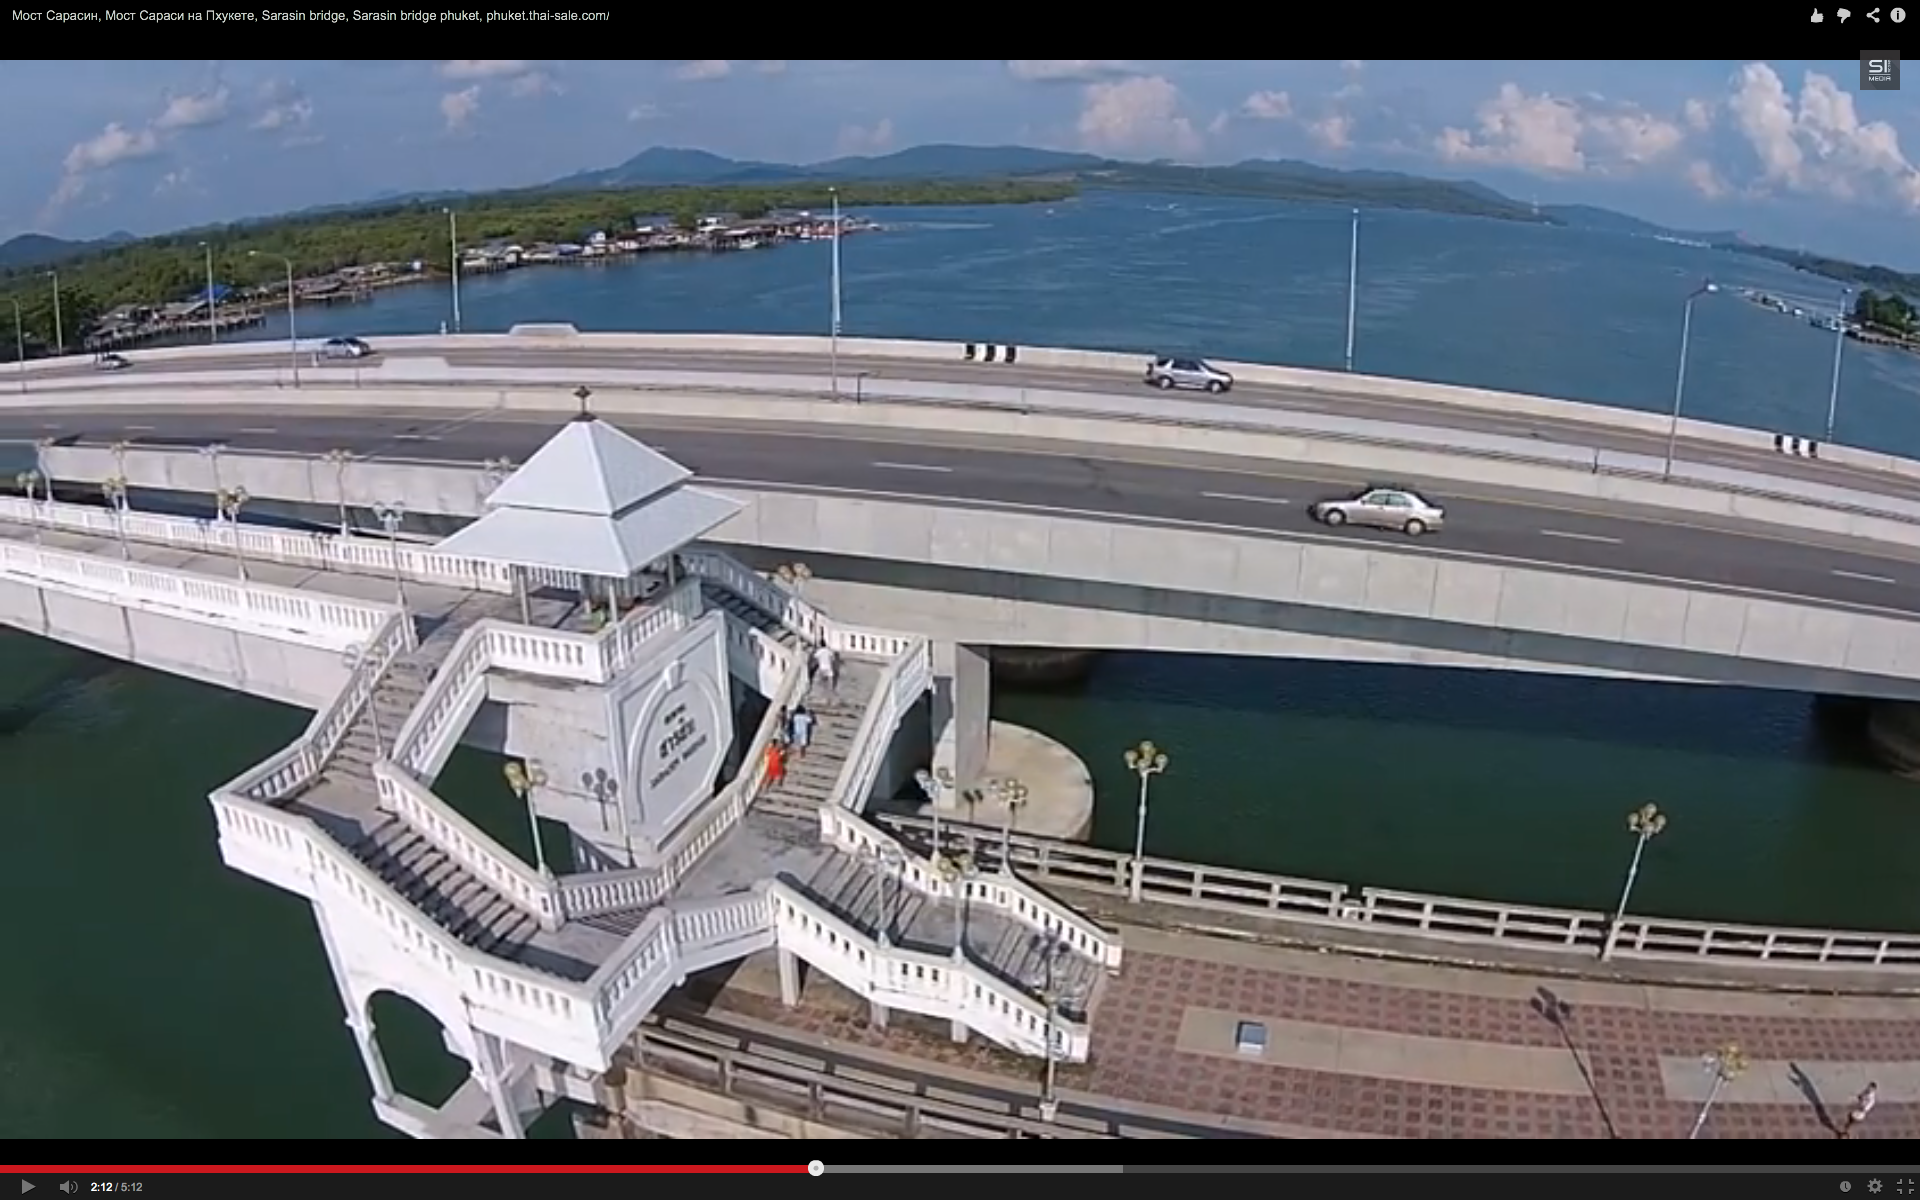 Video Bridge Sarasin, Sarasin Bridge to Phuket, Sarasin bridge, Sarasin bridge phuket